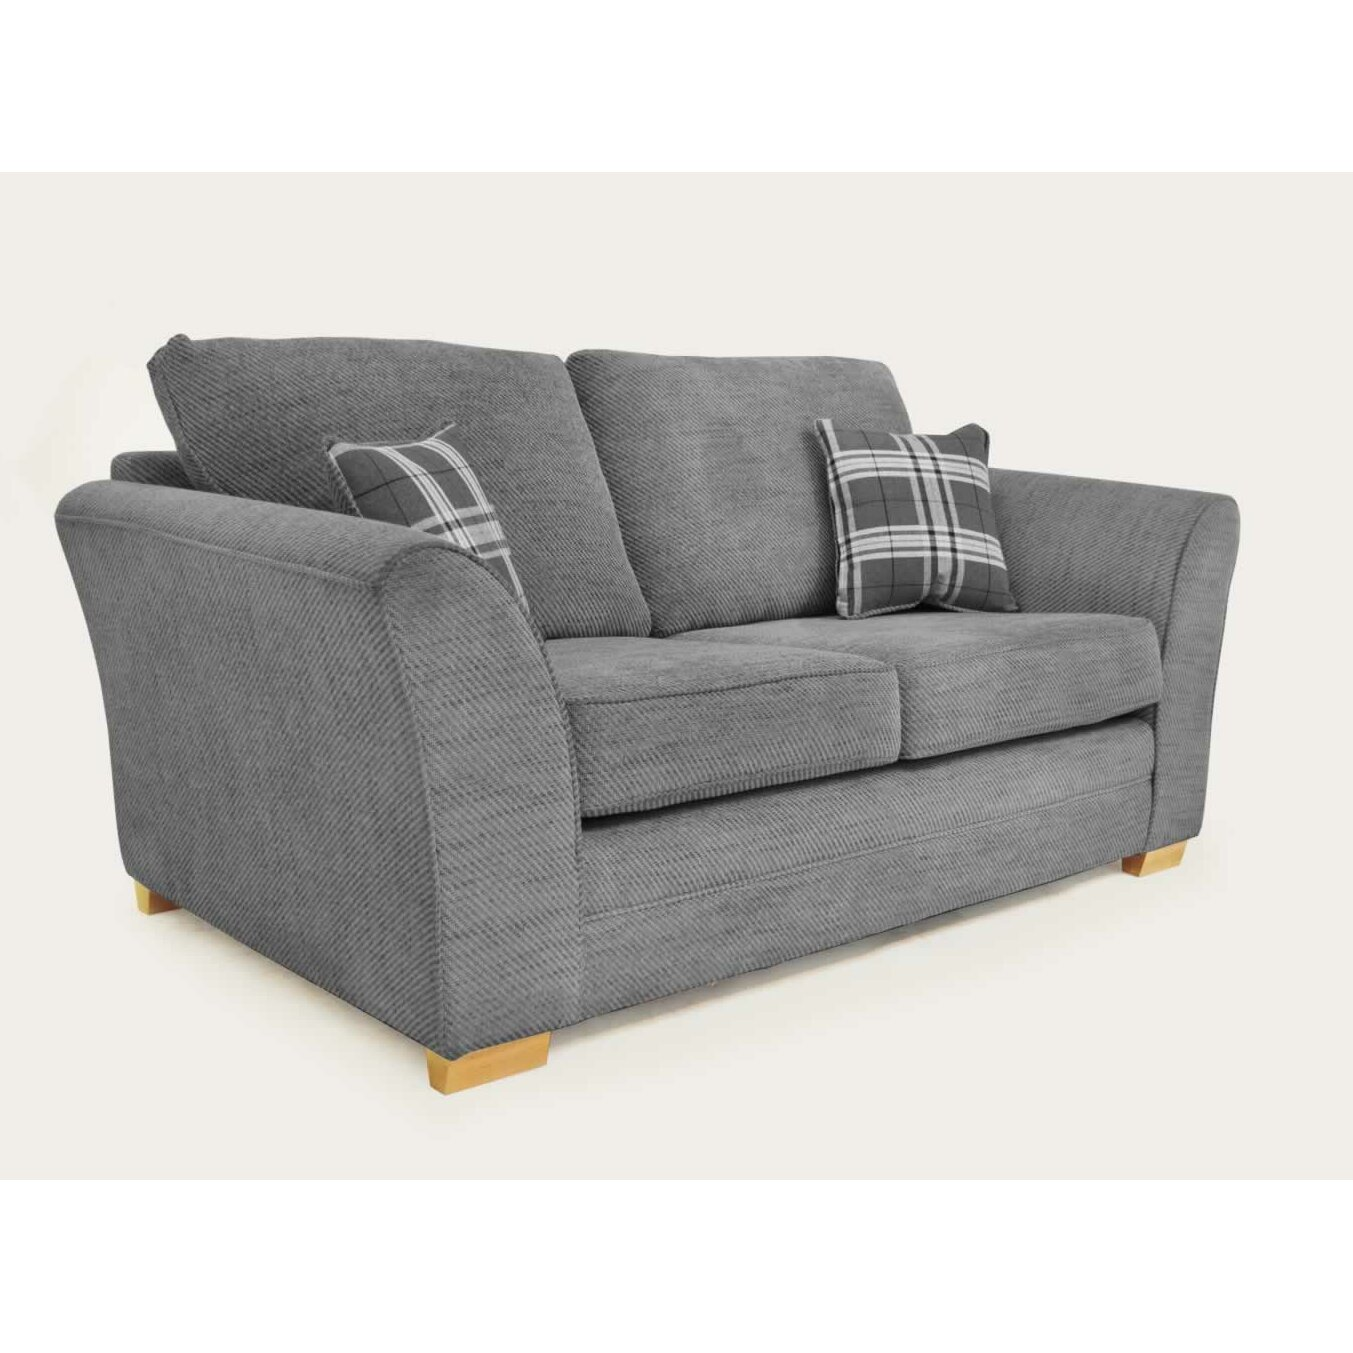 Sofa factory warwick 2 5 seater sofa wayfair uk for Sofa 0 finance